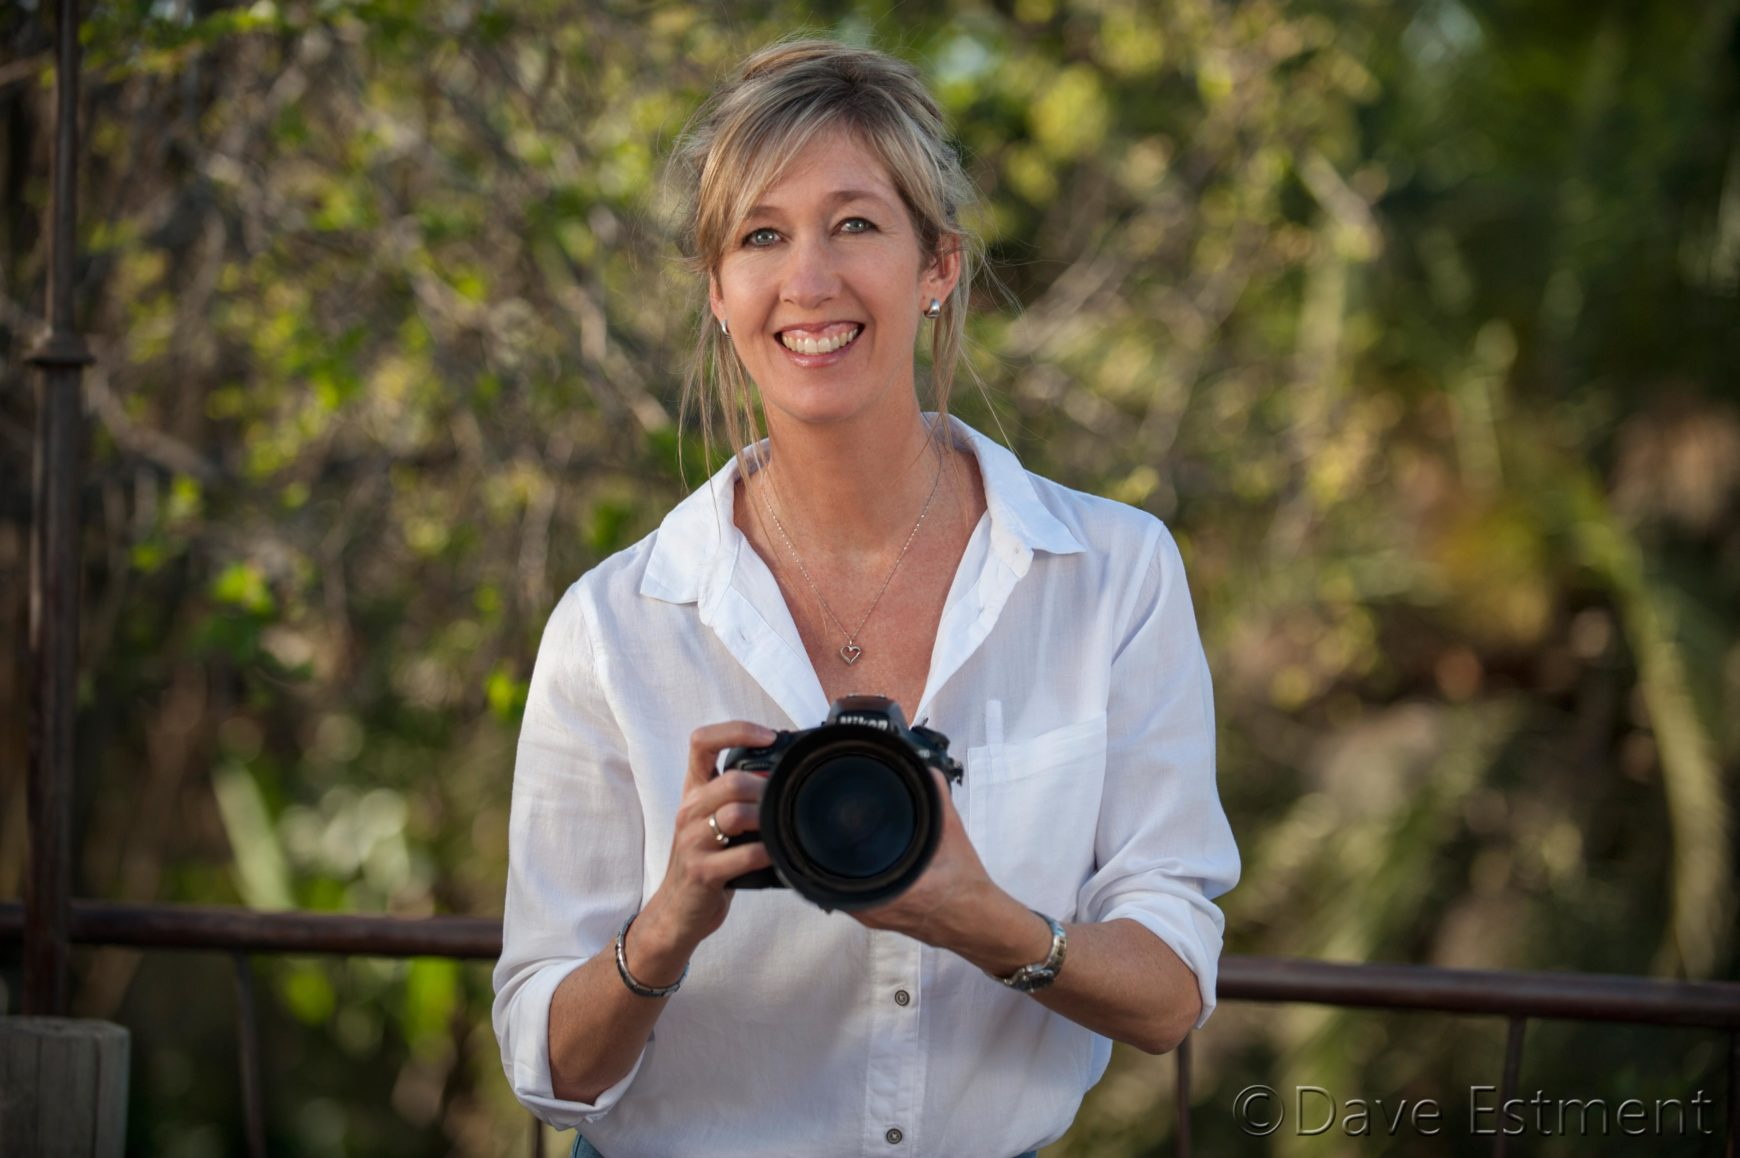 Naomi Estment with Nikon camera, photographed by Dave Estment